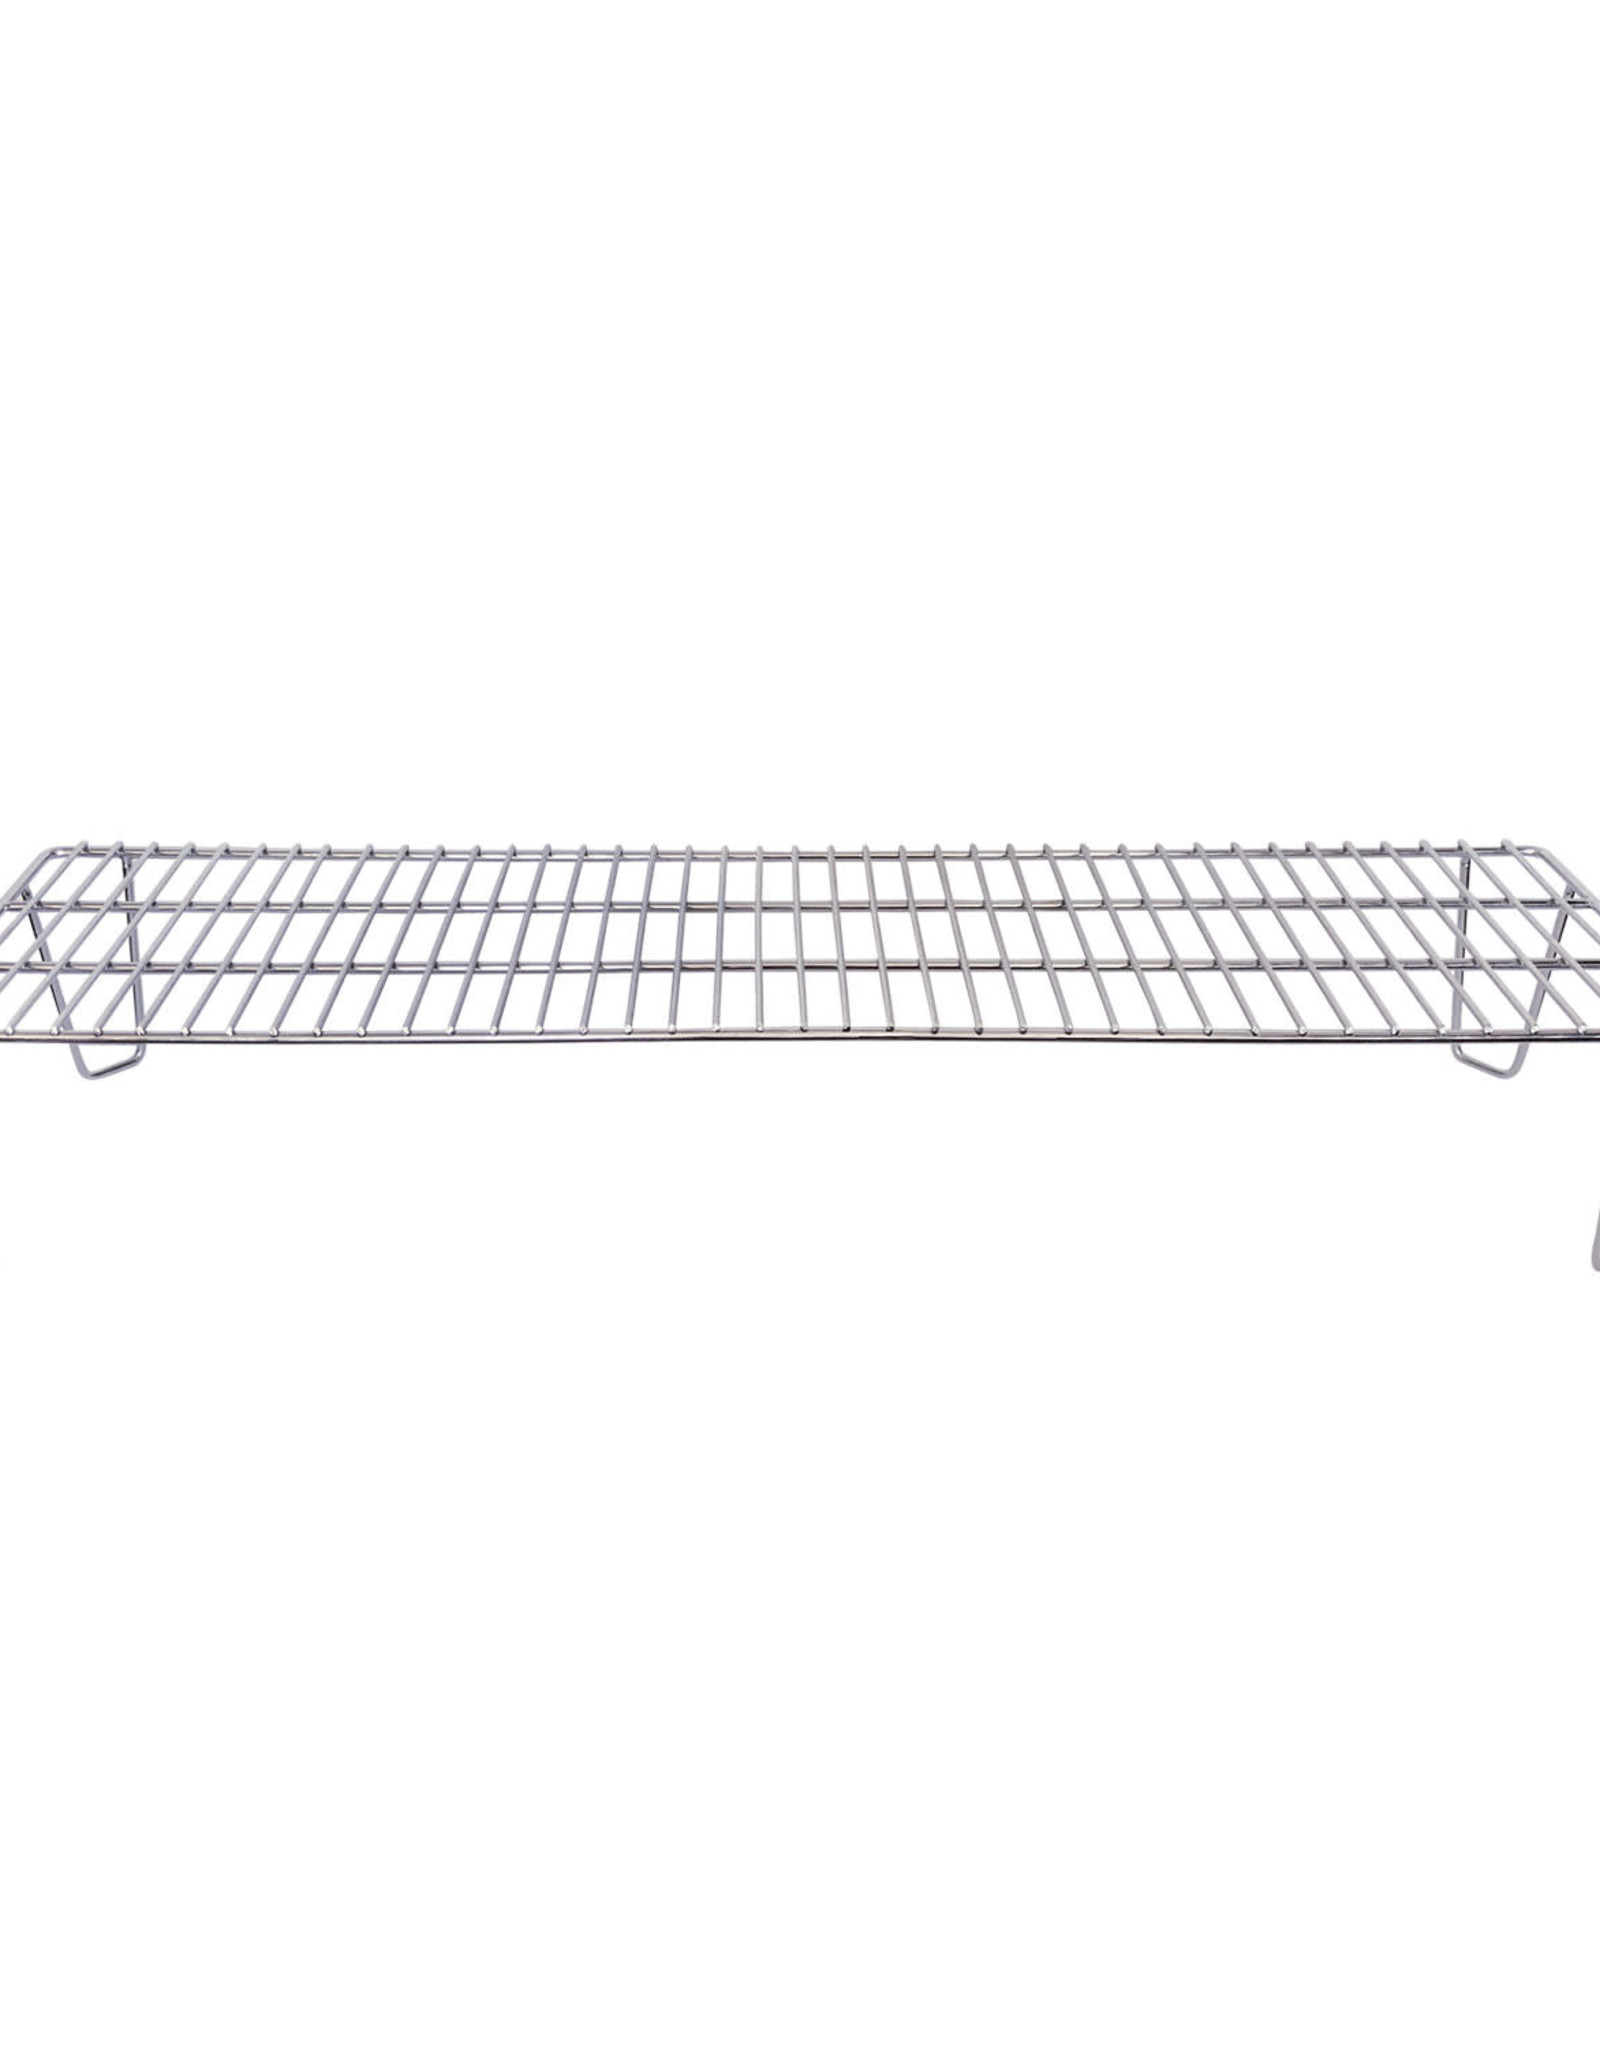 GMG GMG UPPER RACK - JB (COLLAPSIBLE)